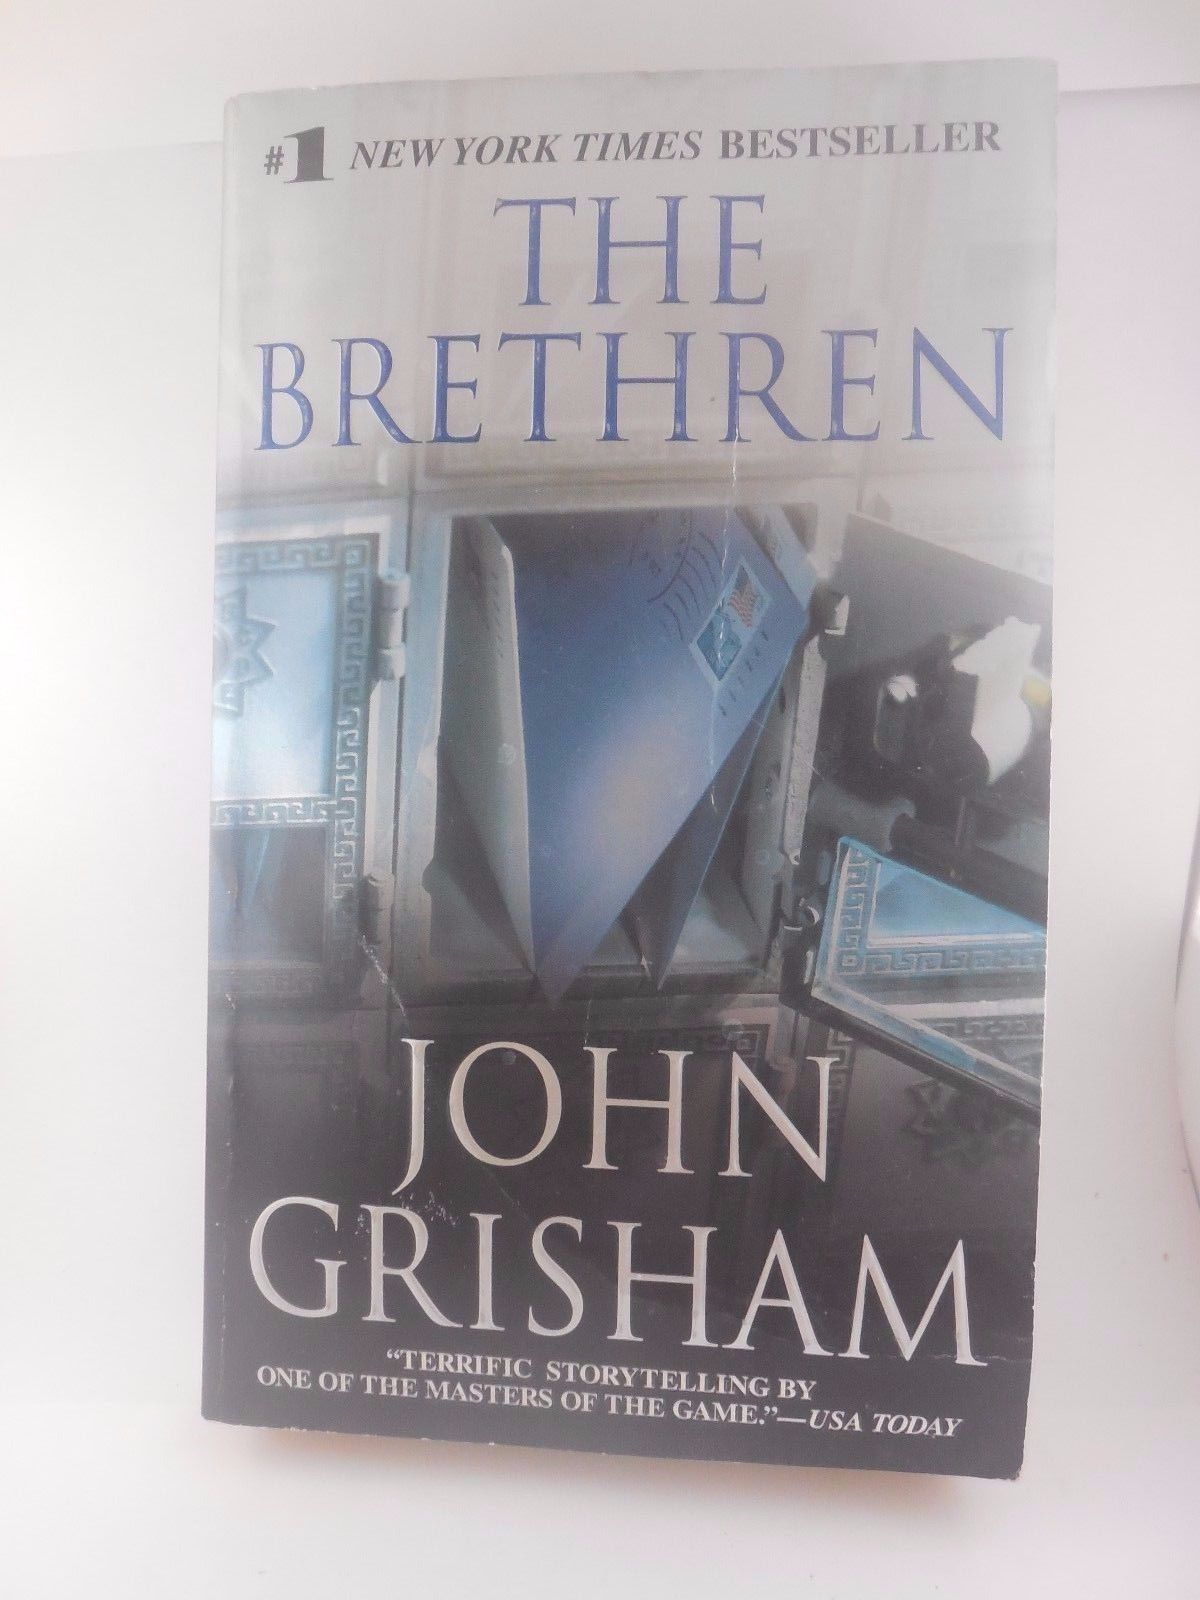 an analysis of suspense in the brethren by john grisham I'm a john grisham fan, but his latest legal thrillers have tended to be formulaic-you could pretty much figure the outcome the king of torts departs from his usual, small-guy-takes-on-the-system-and-flees-the-country story.